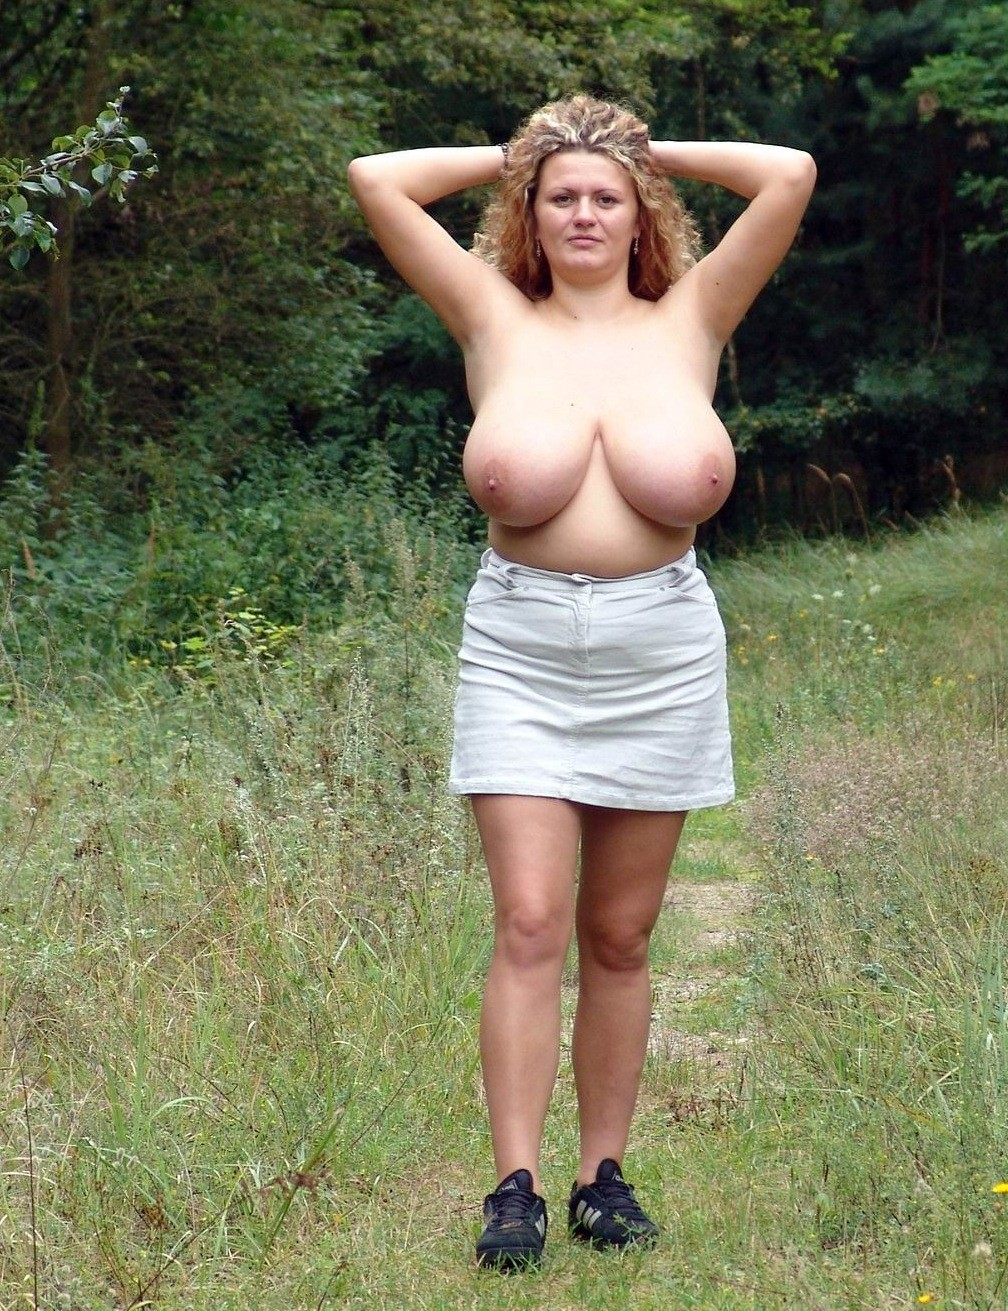 Are mistaken. Nude mature girls with big saggy boobs share your